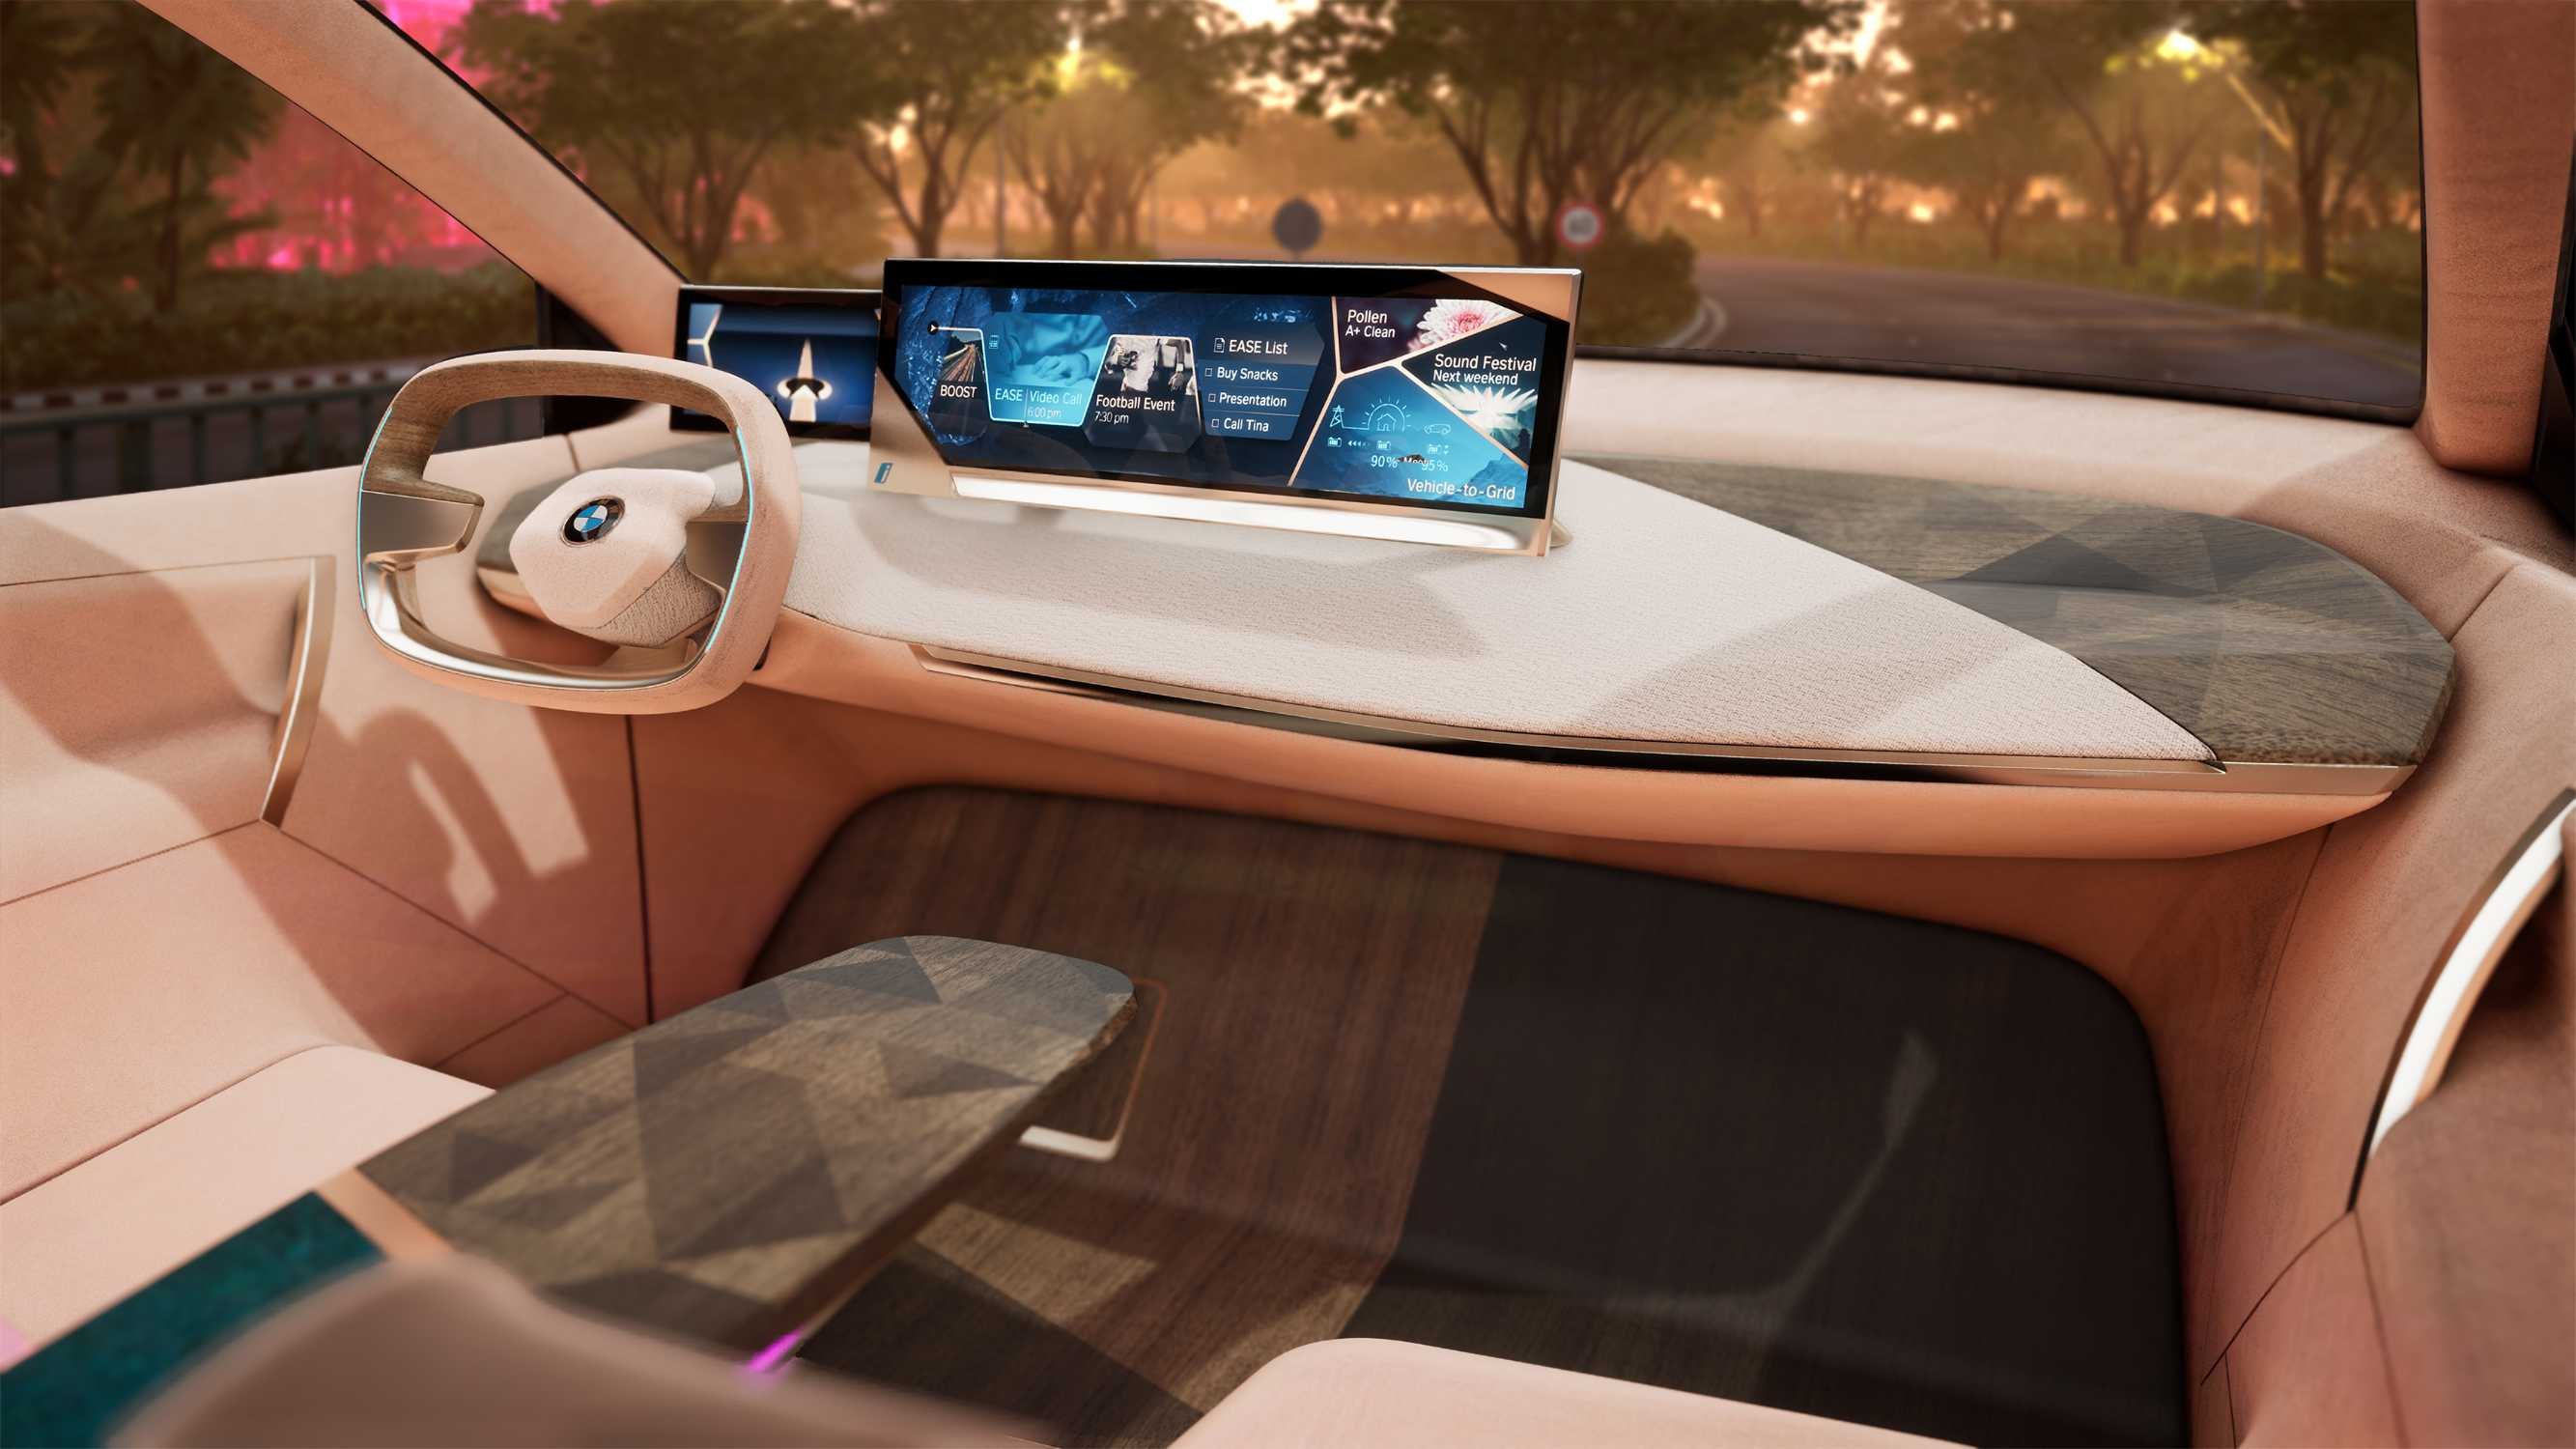 Bmw Group At The Ces 2019 In Las Vegas Virtual Drive In The Bmw